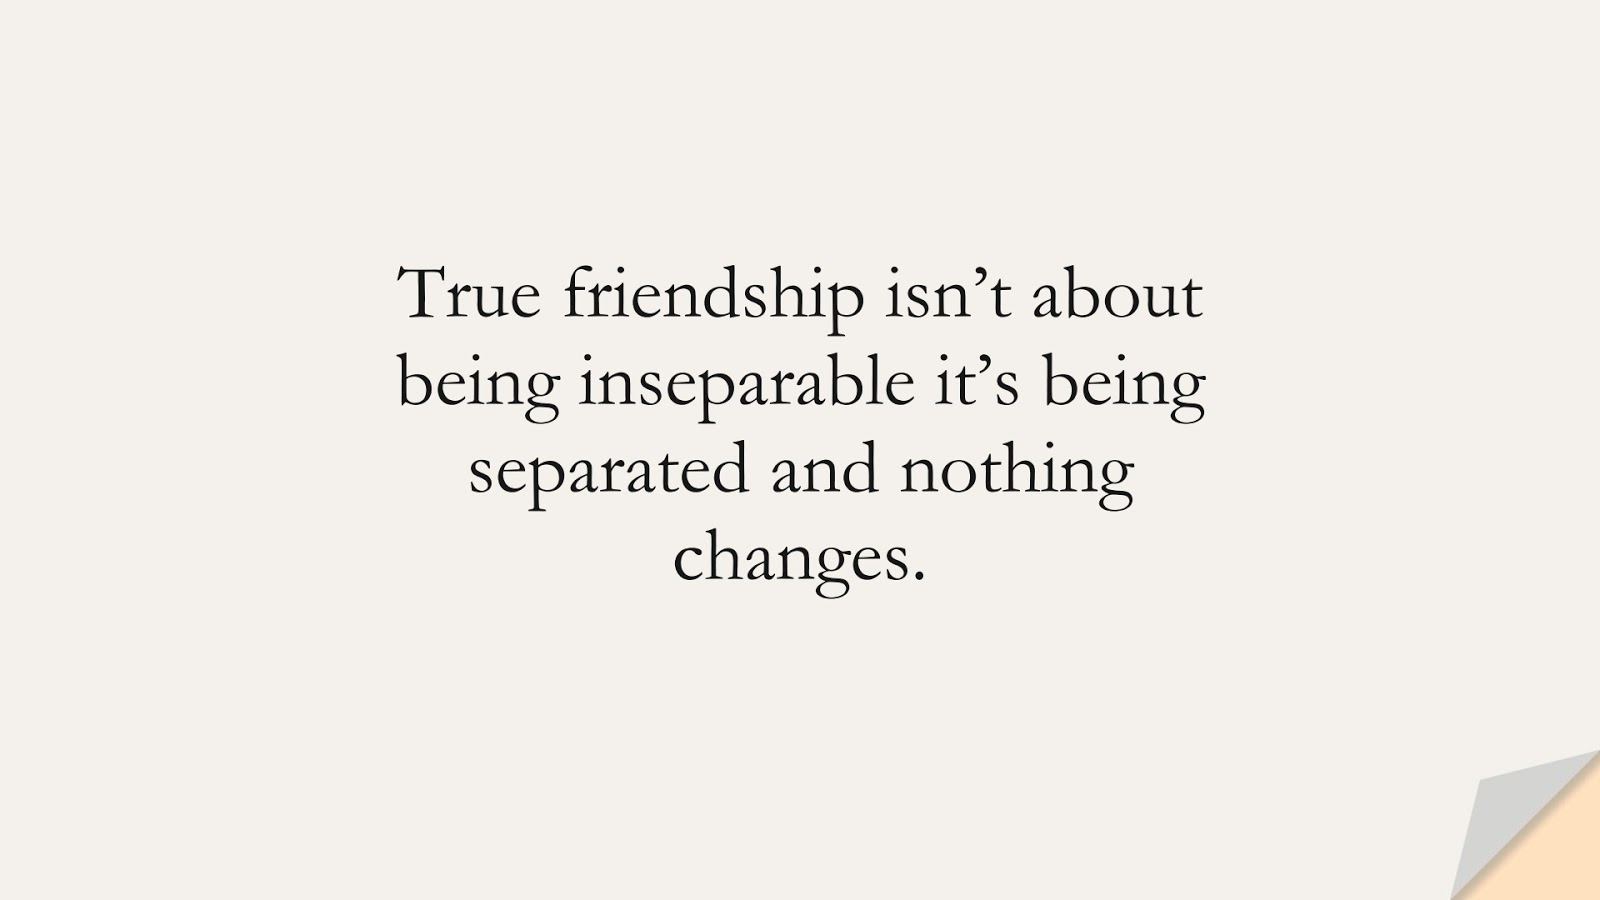 True friendship isn't about being inseparable it's being separated and nothing changes.FALSE